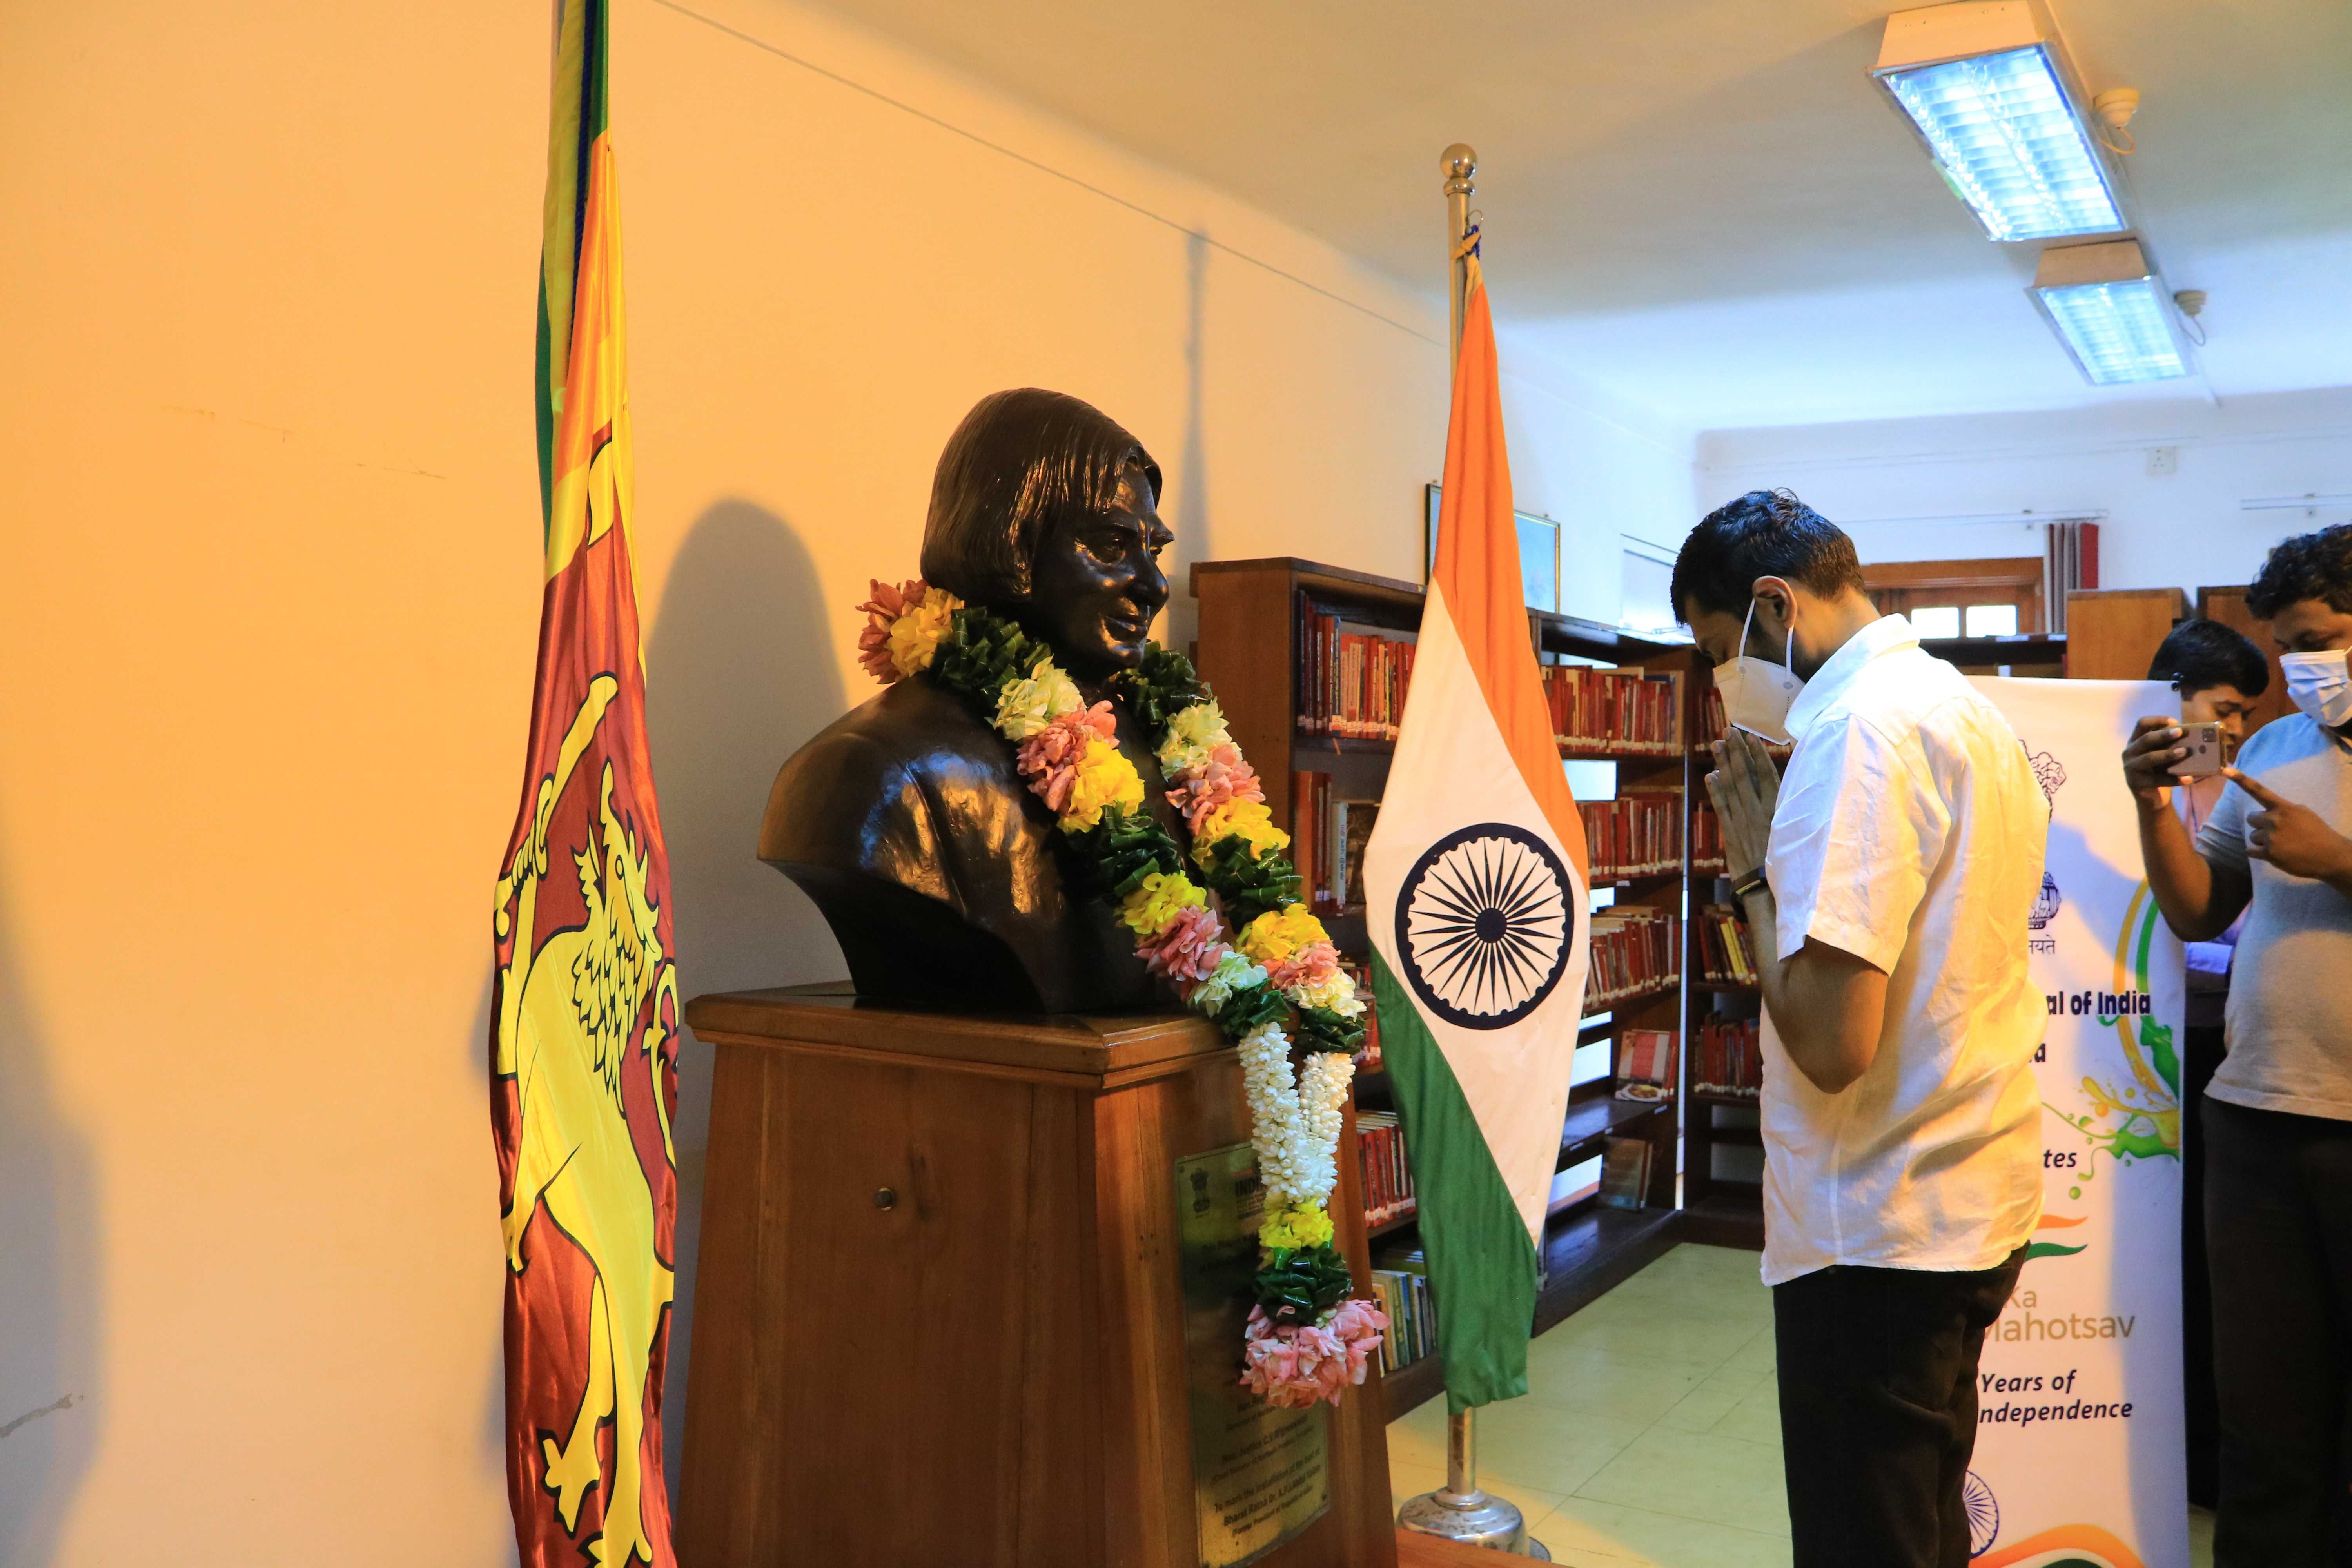 On the 90th Birth Anniversary of Bharat Ratna Dr APJ Abdul Kalam, former President of India, Consul General garlanded the bust of Dr. Kalam at India Corner, Jaffna Public Library.